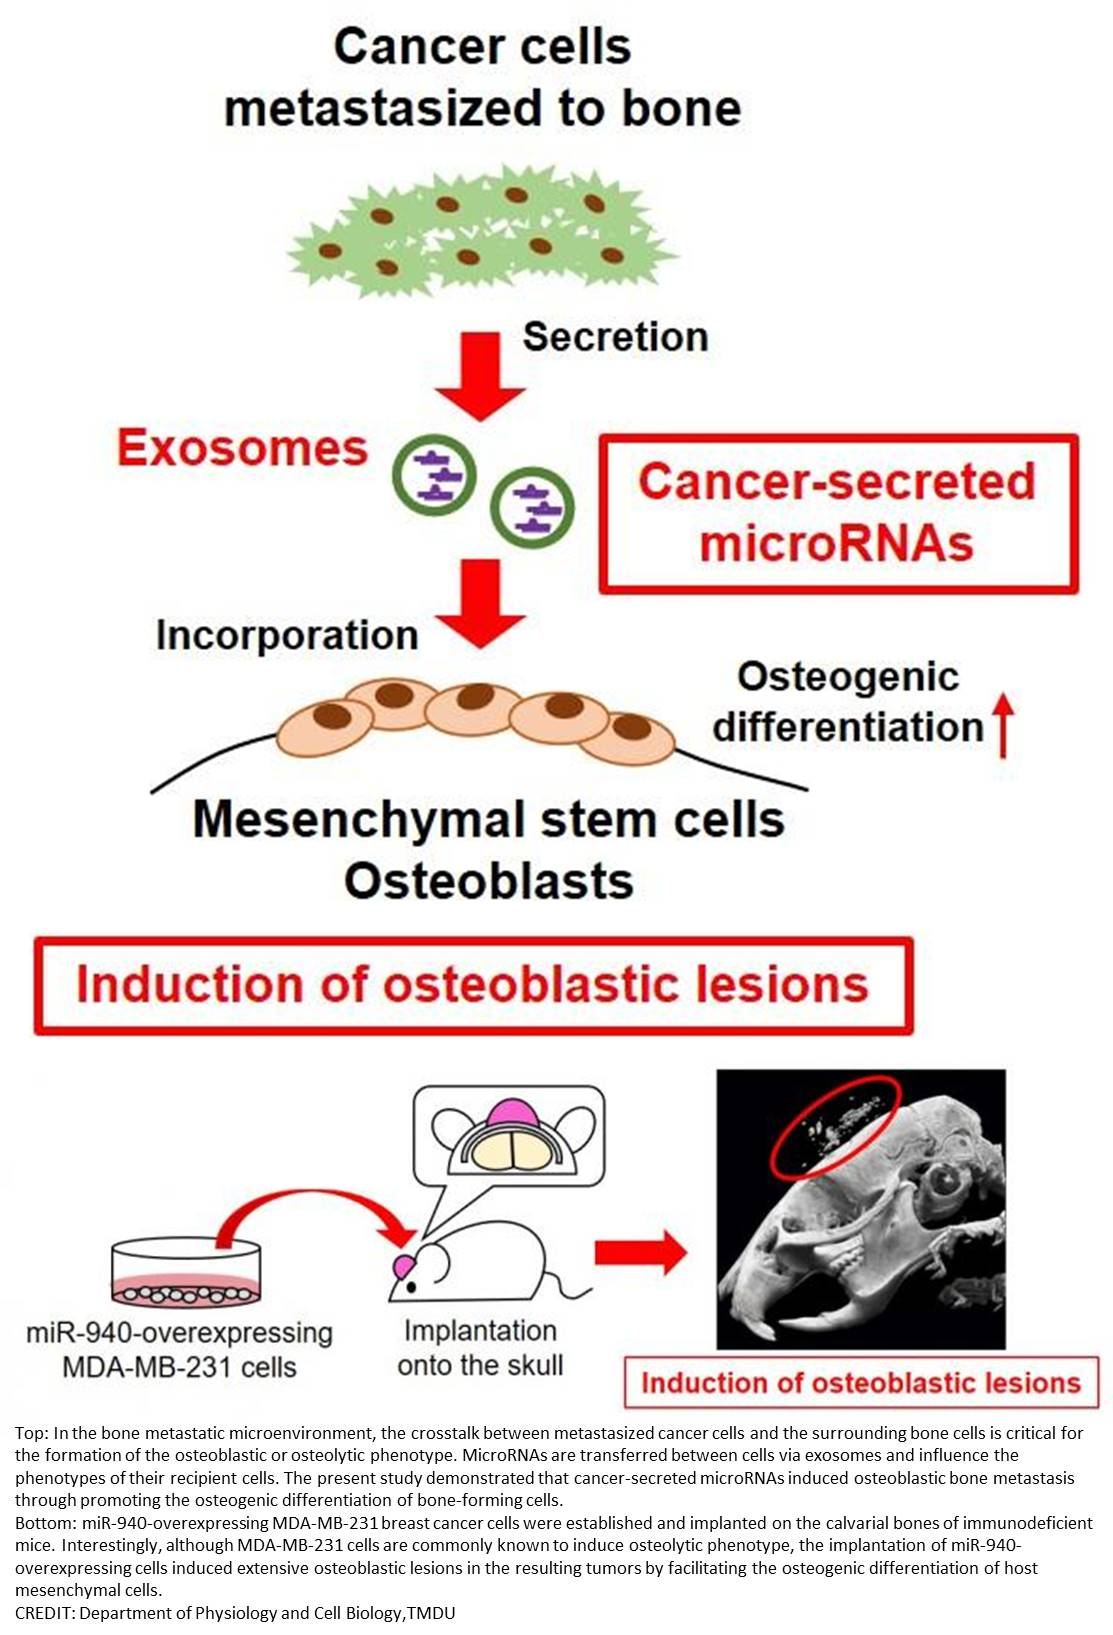 Secreted microRNA alters bone structure in late-stage prostate cancer